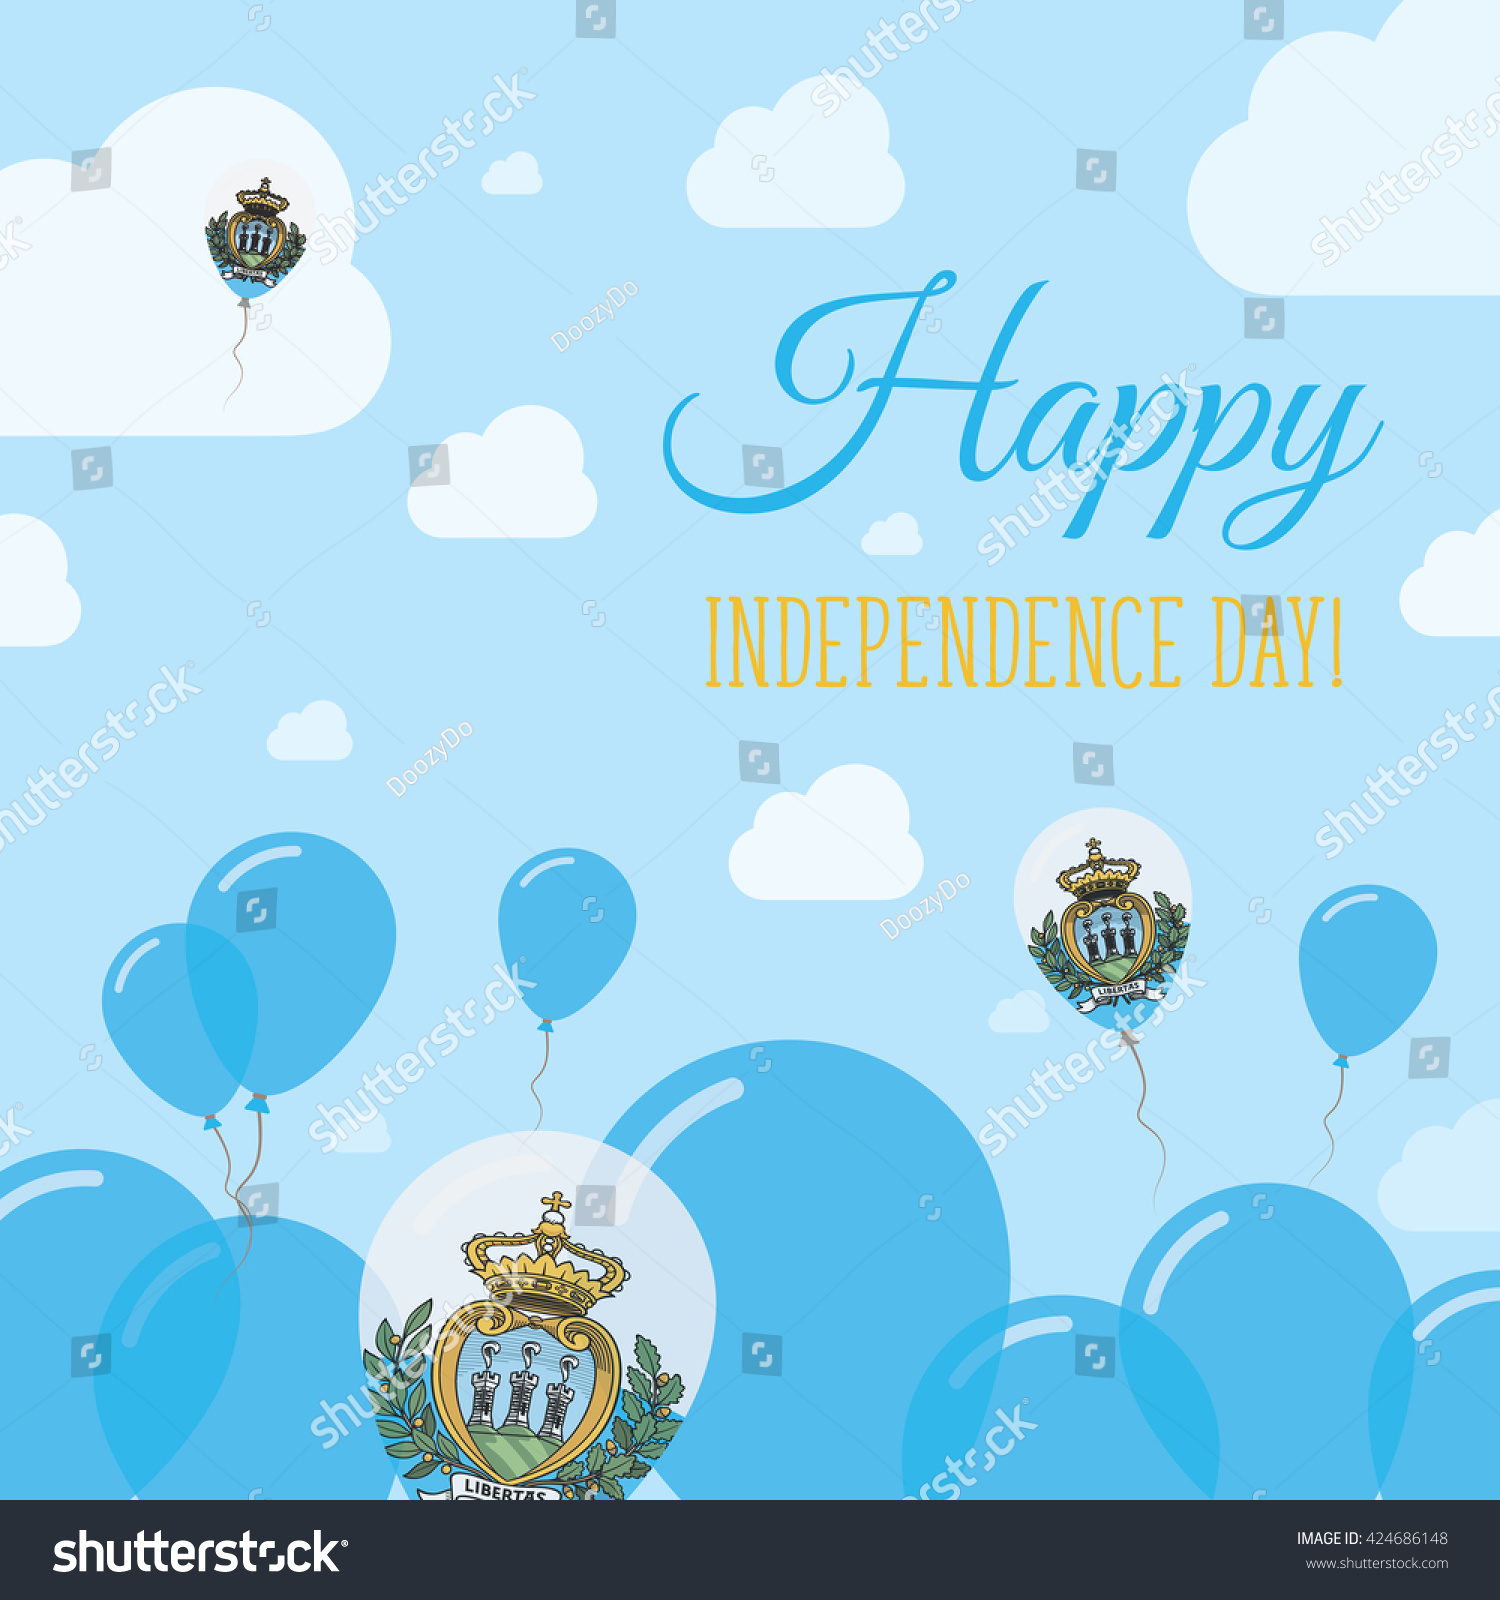 https://image.shutterstock.com/z/stock-vector-san-marino-independence-day-flat-patriotic-design-sammarinese-flag-balloons-happy-national-day-424686148.jpg